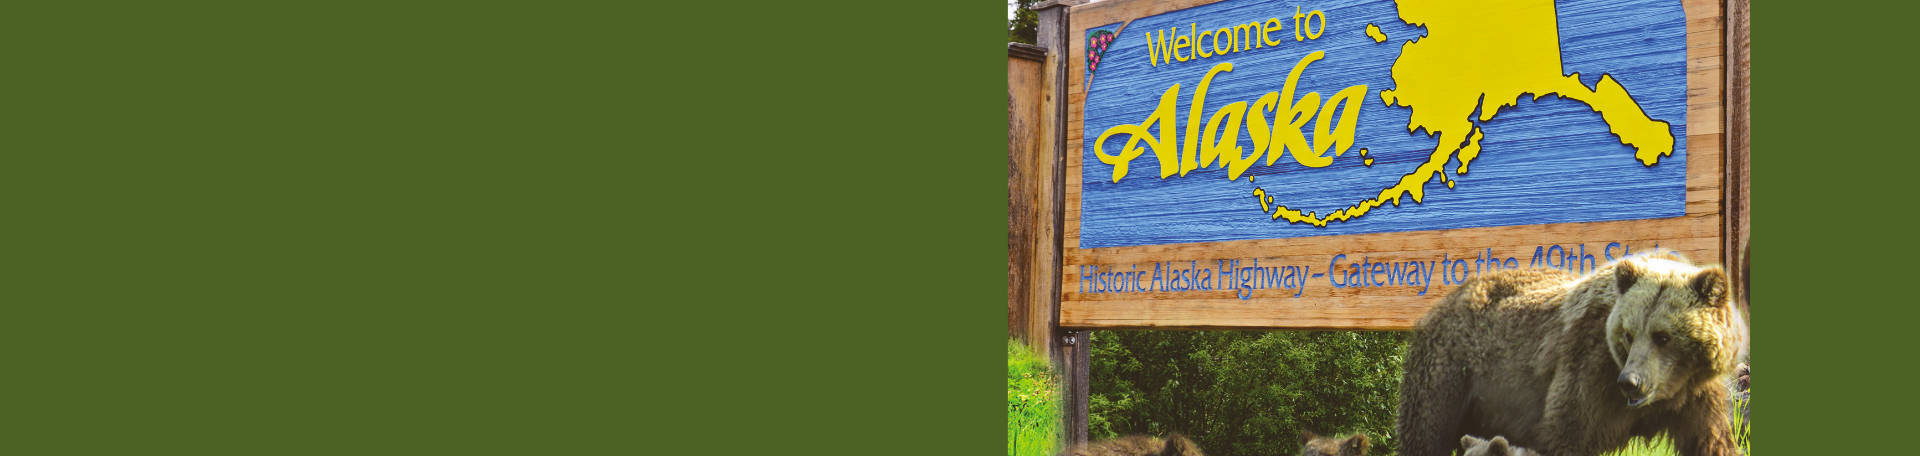 slide_welcome_to_alaska